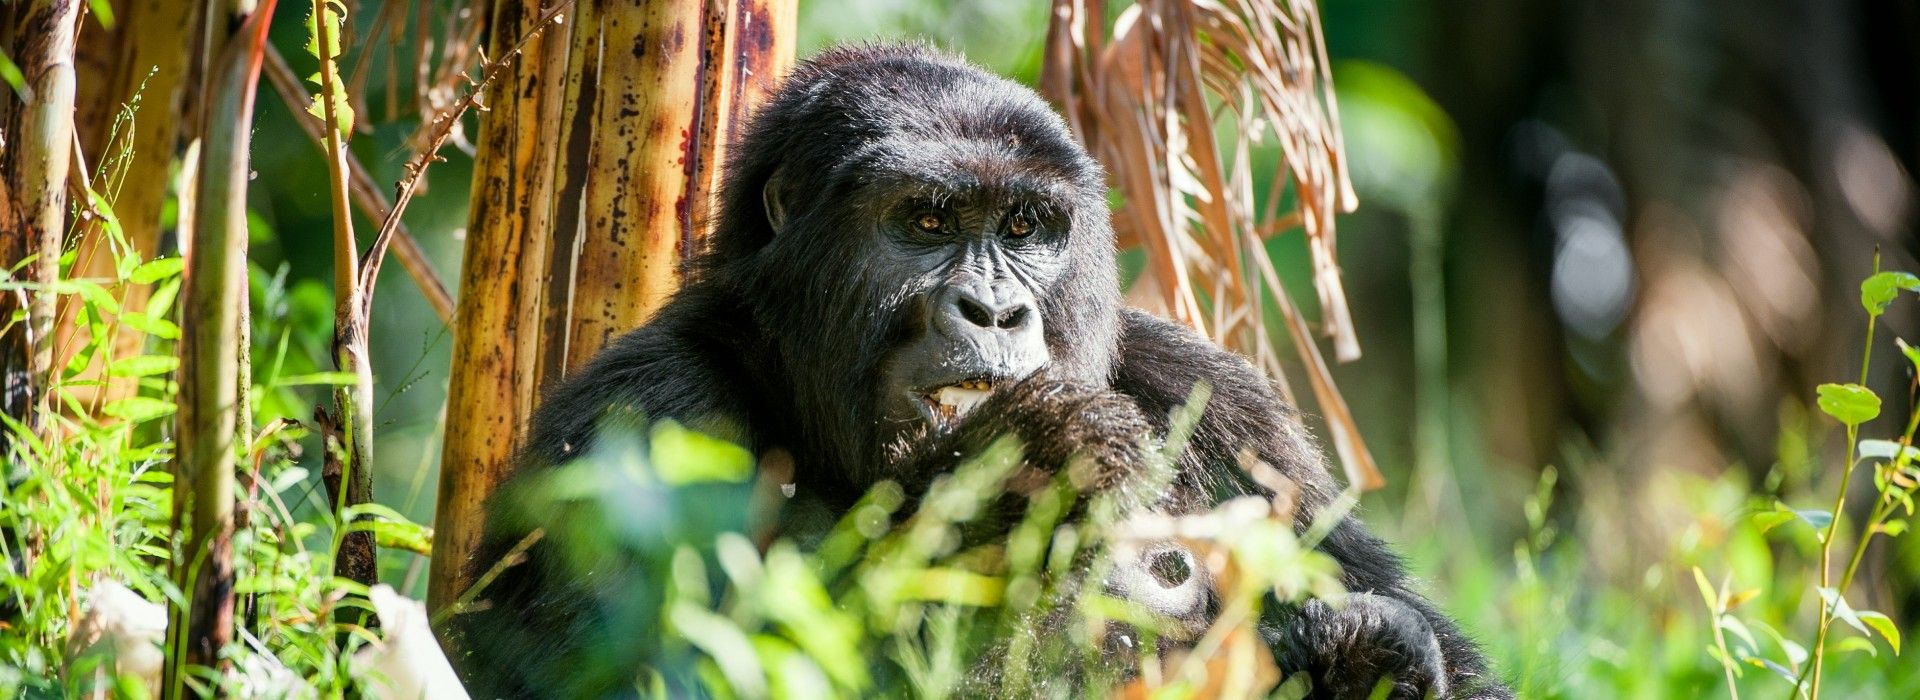 National parks Tours in Bwindi Impenetrable National Park